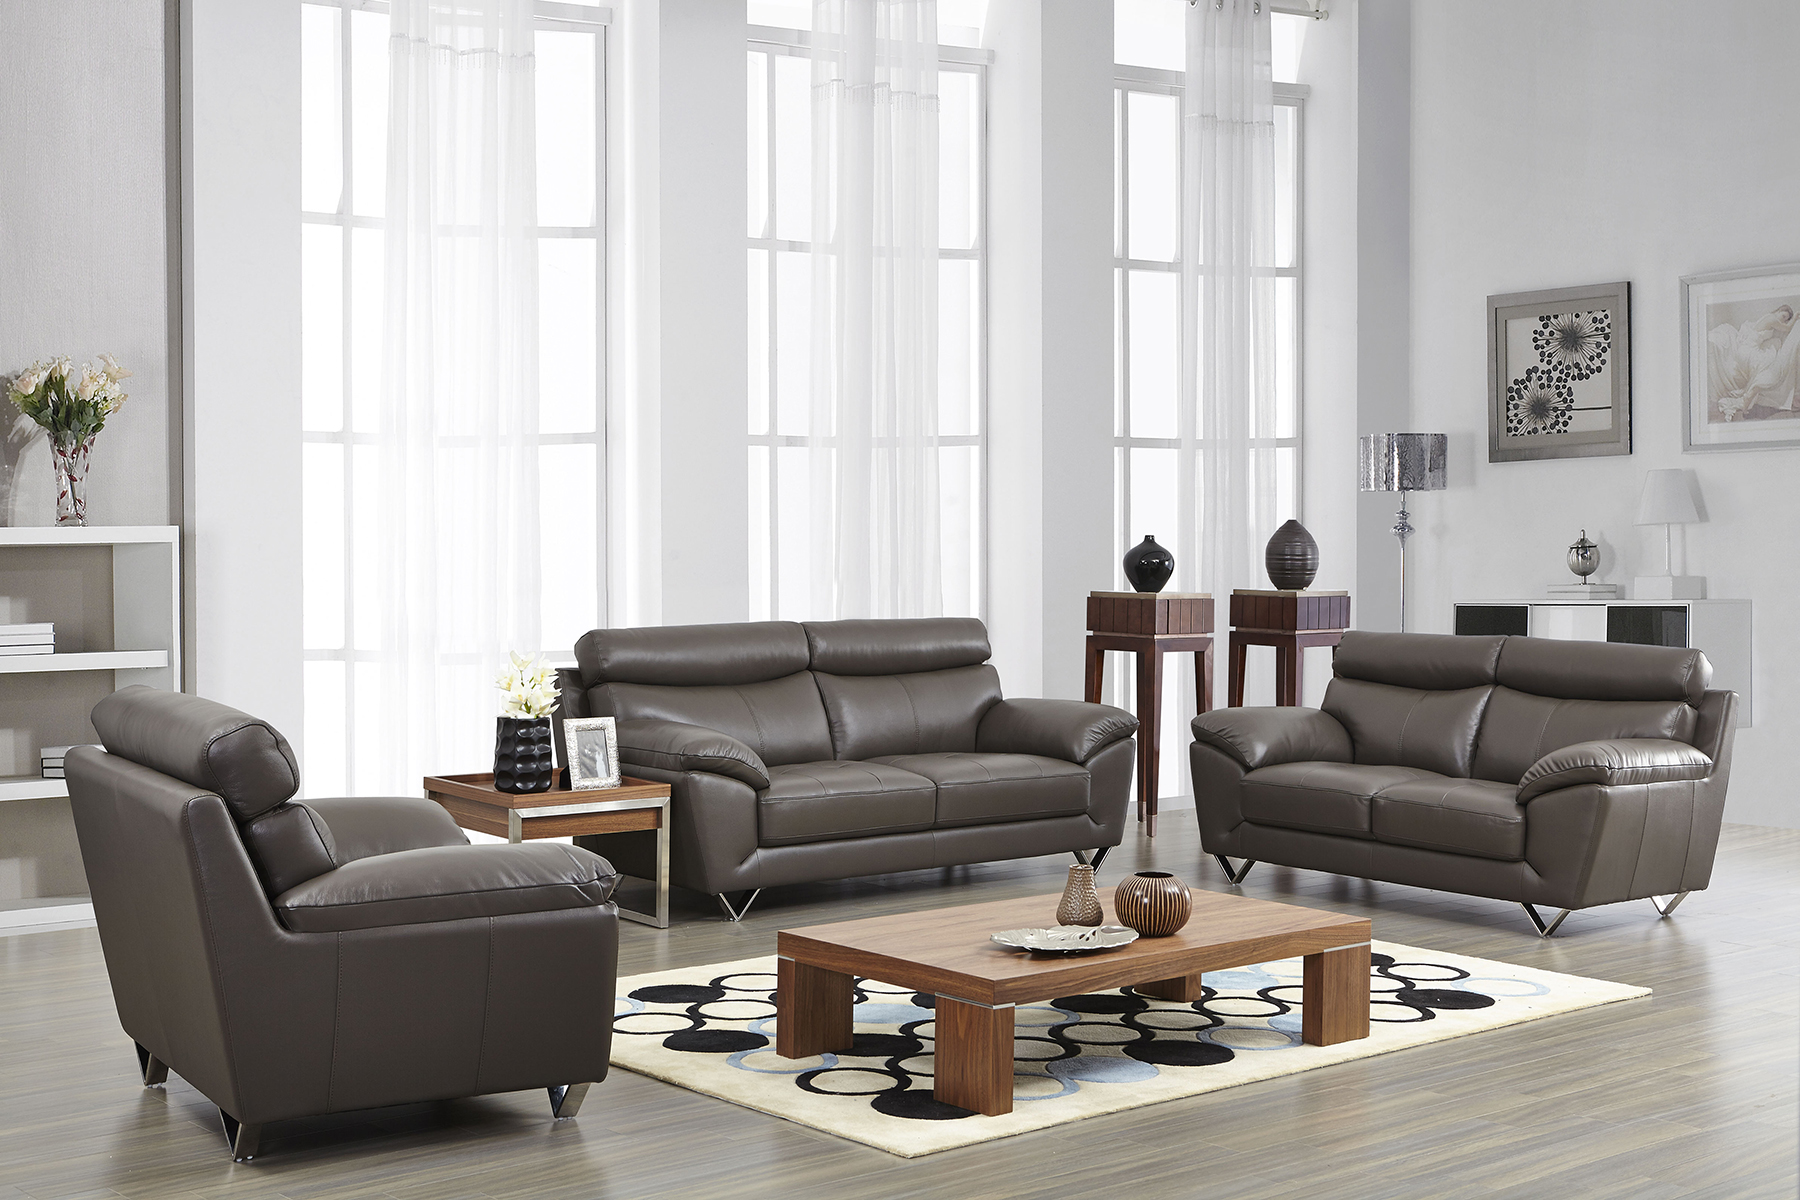 Contemporary Stylish Leather 3pc Sofa Set With Chrome Legs